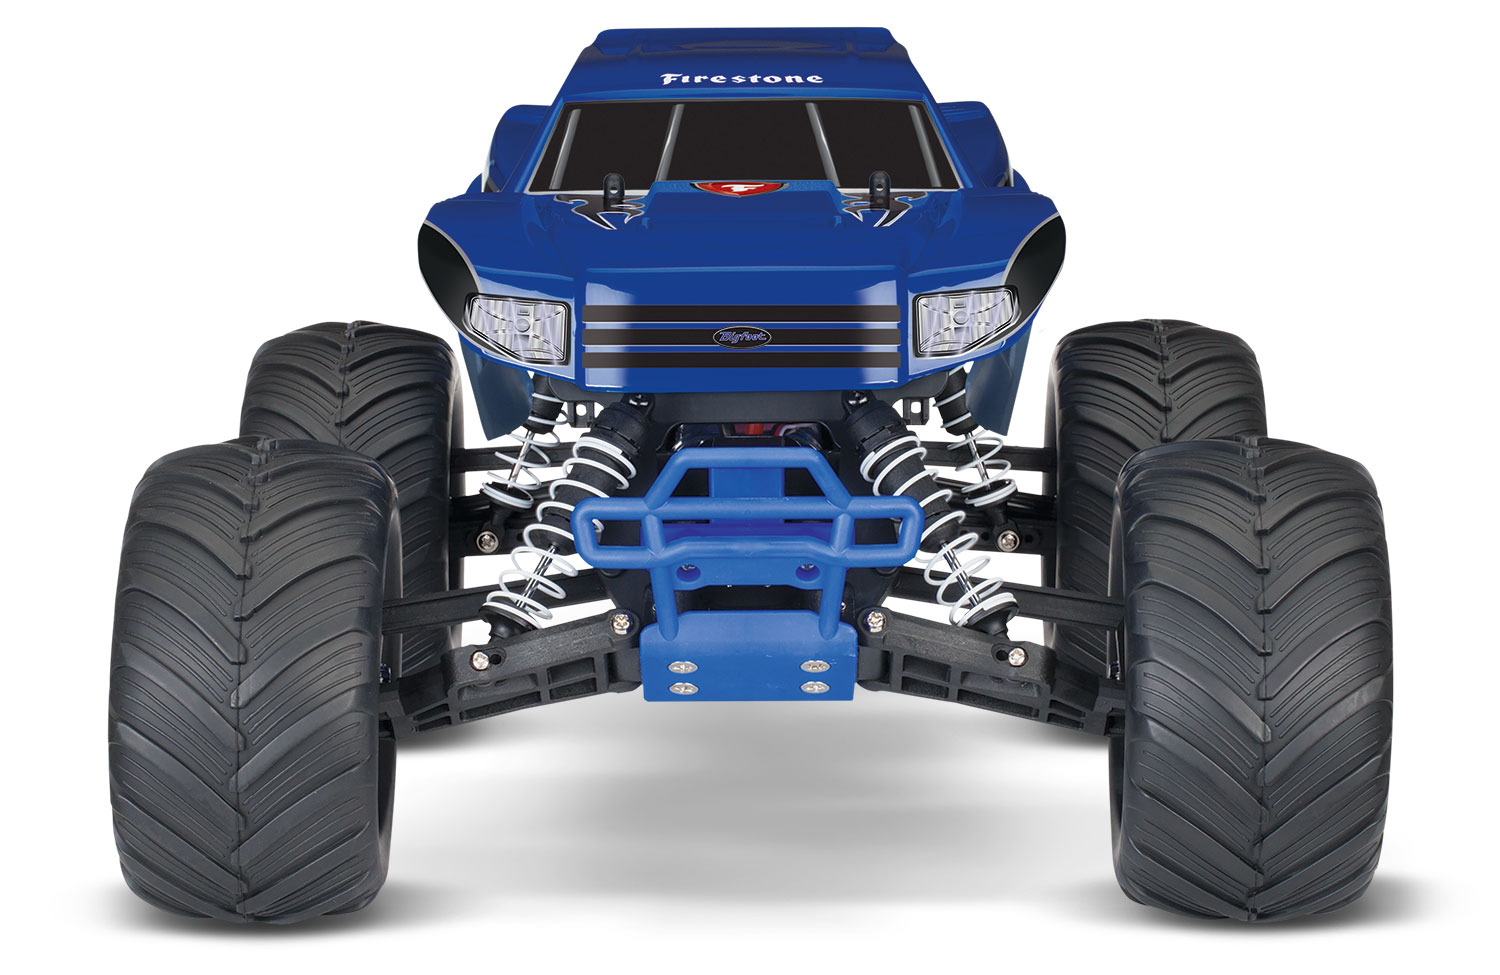 traxxas-bigfoot-36084-1-fstn-4.jpg